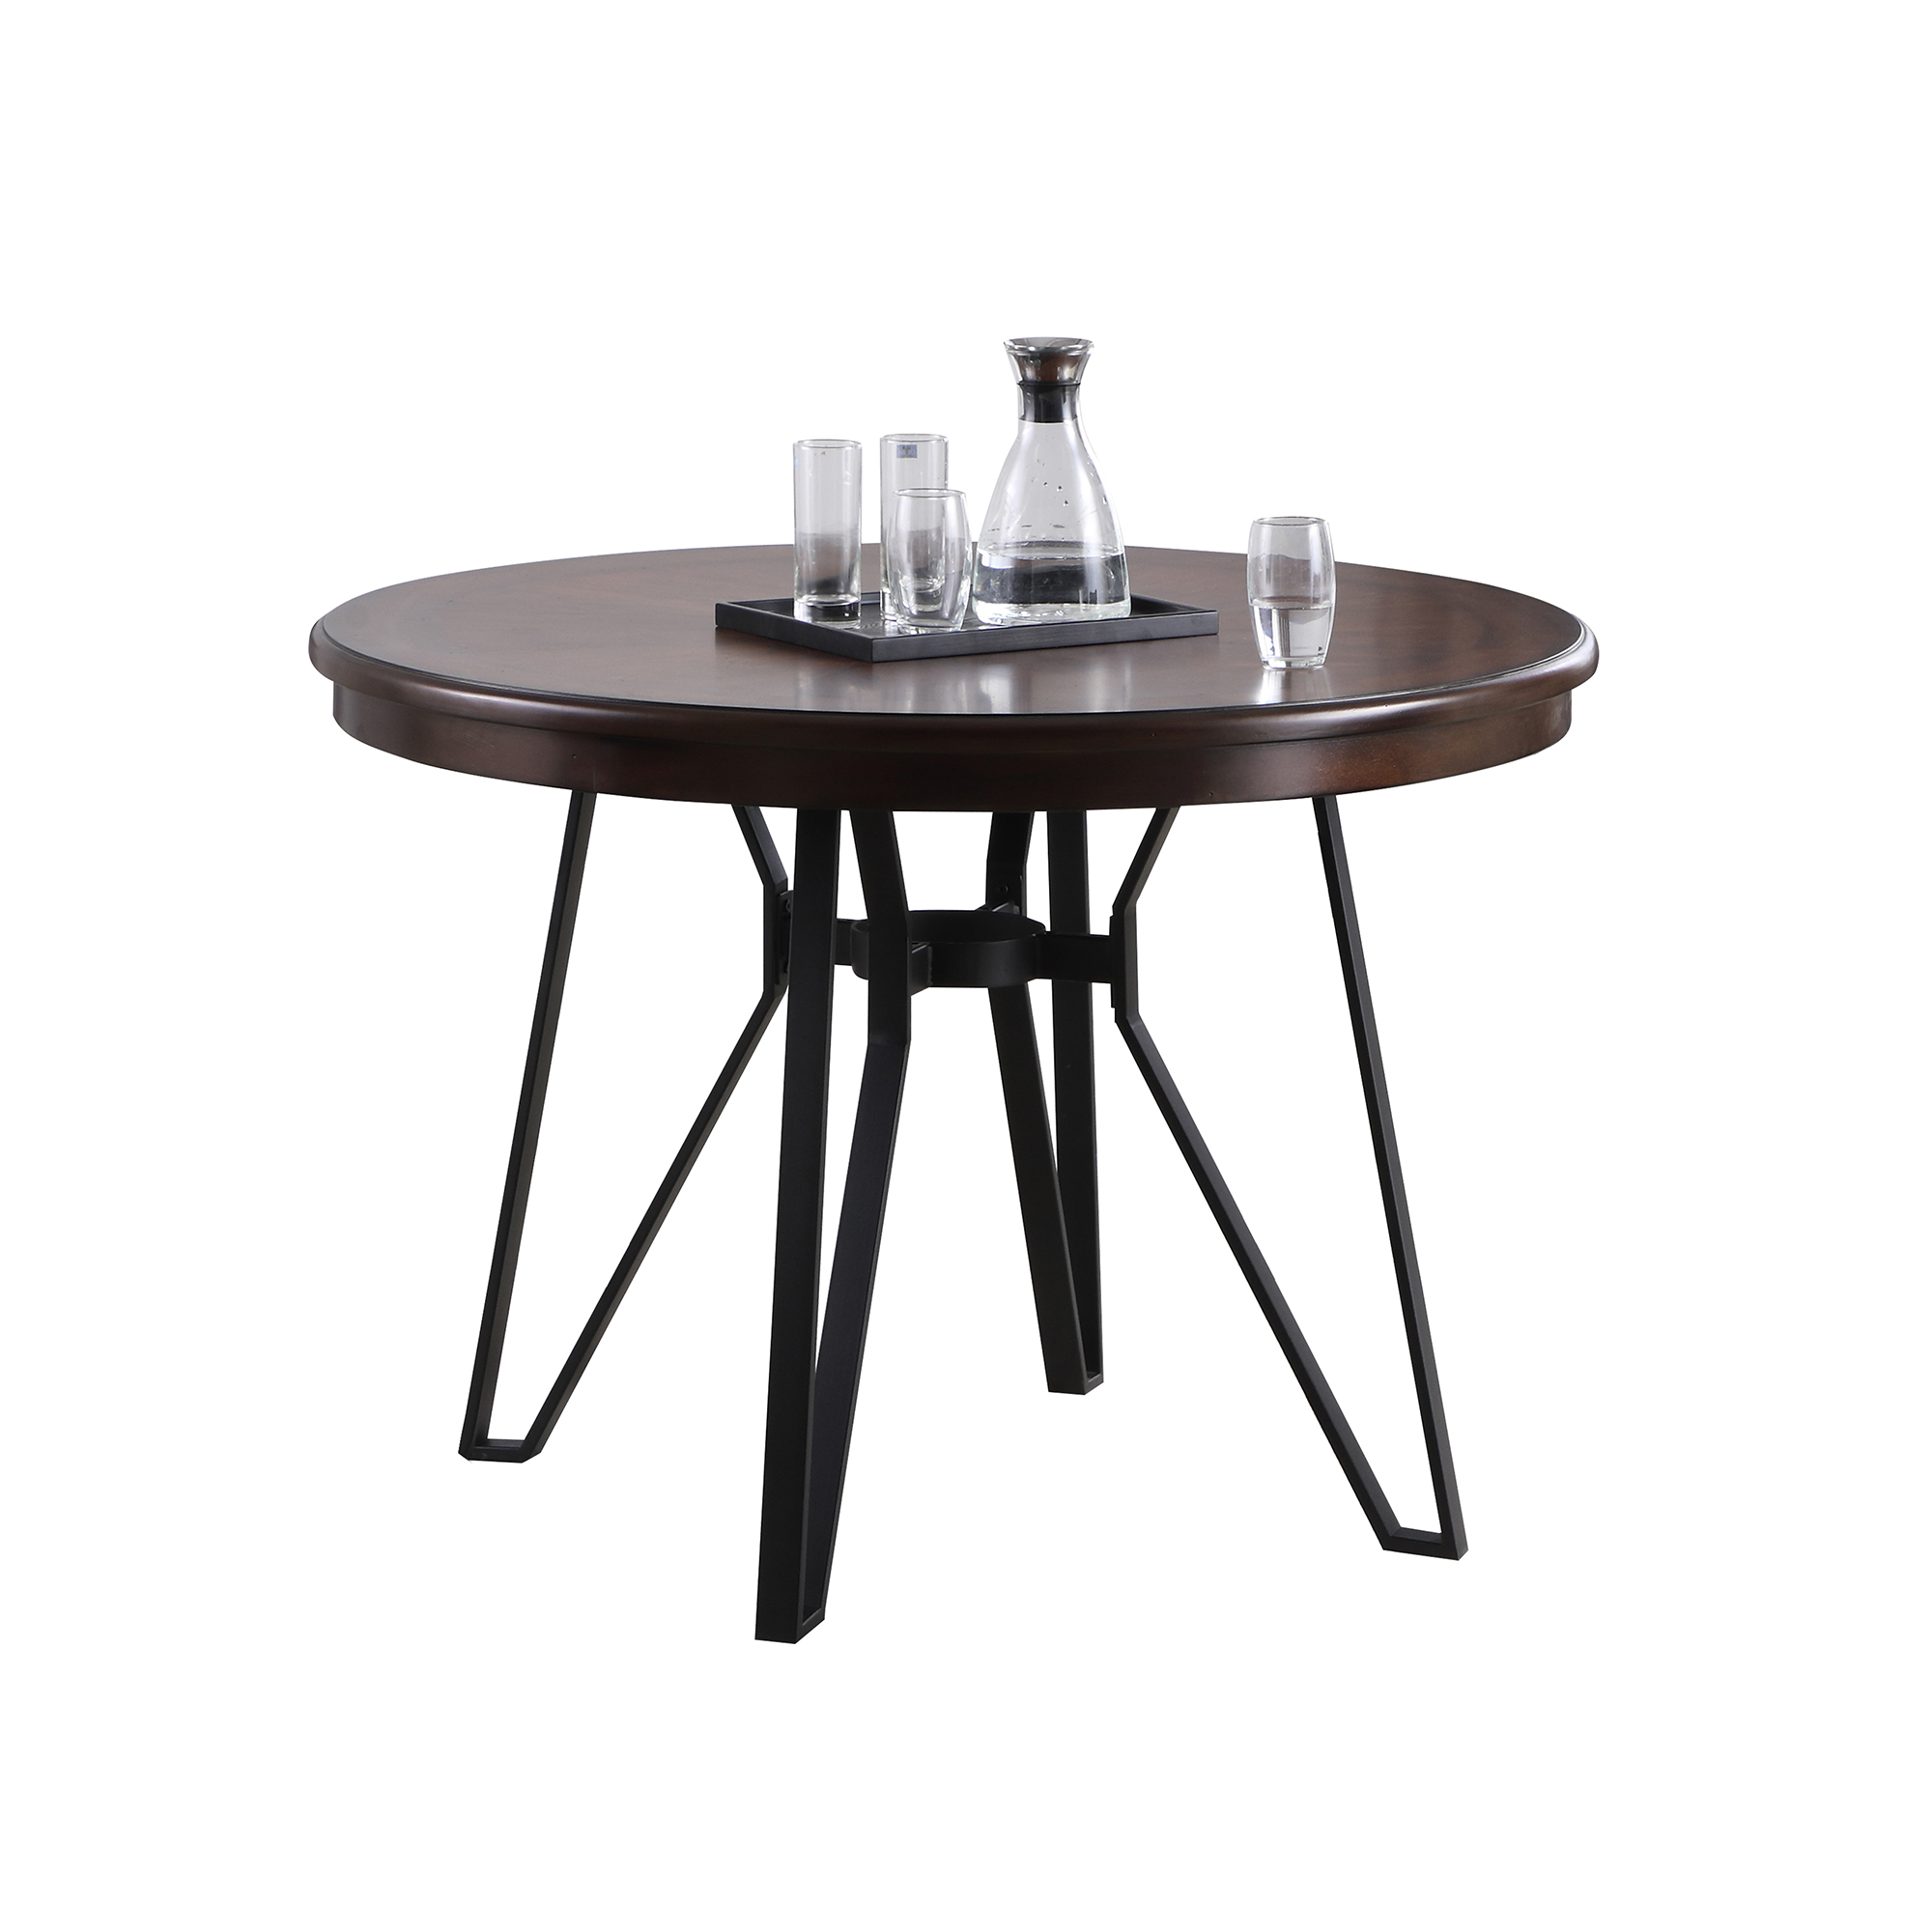 1860D Dining table set D